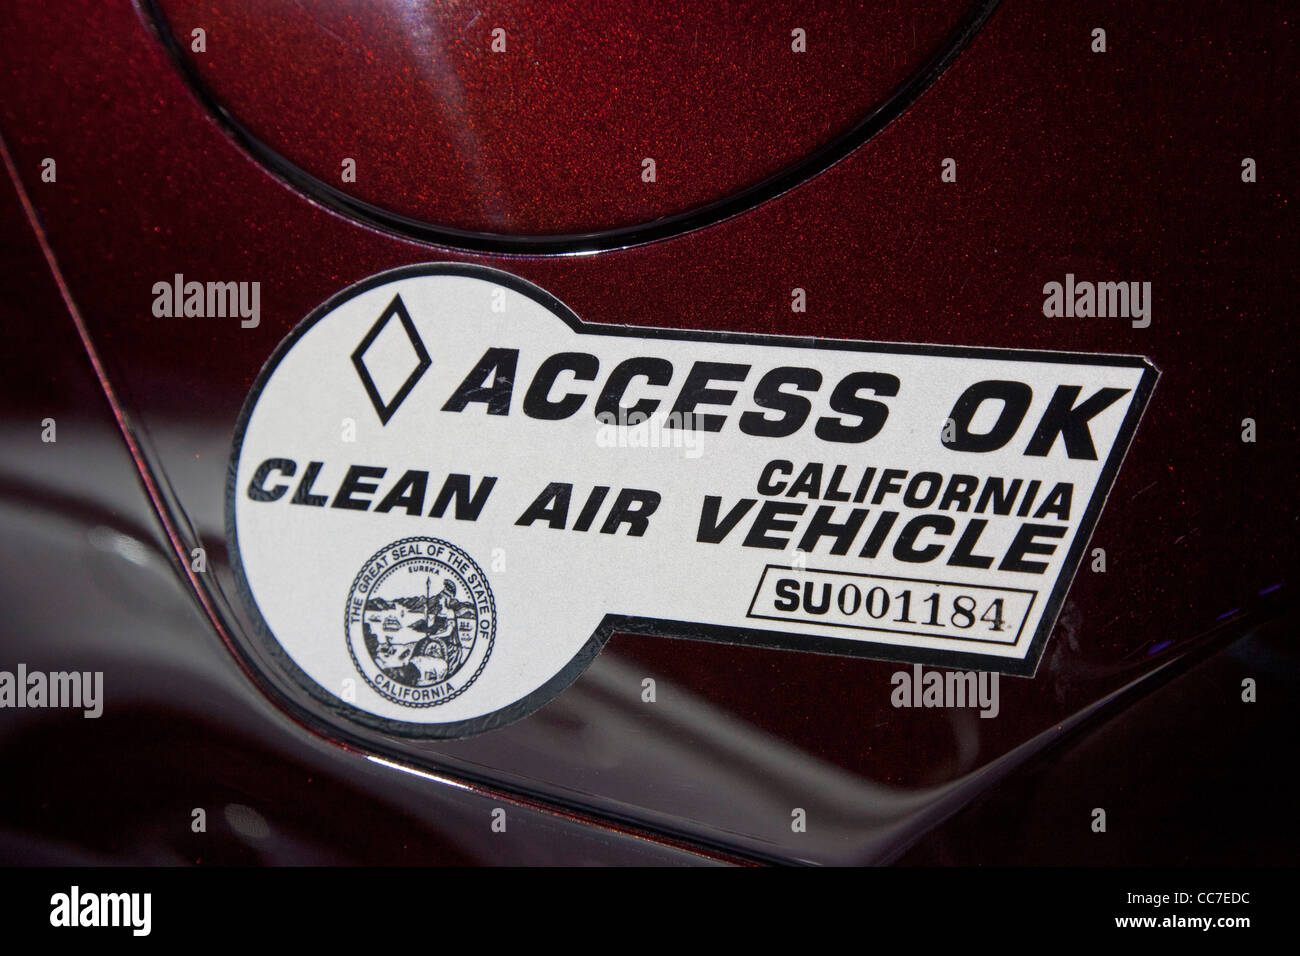 California Clean Air Vehicle Sticker - Stock Image